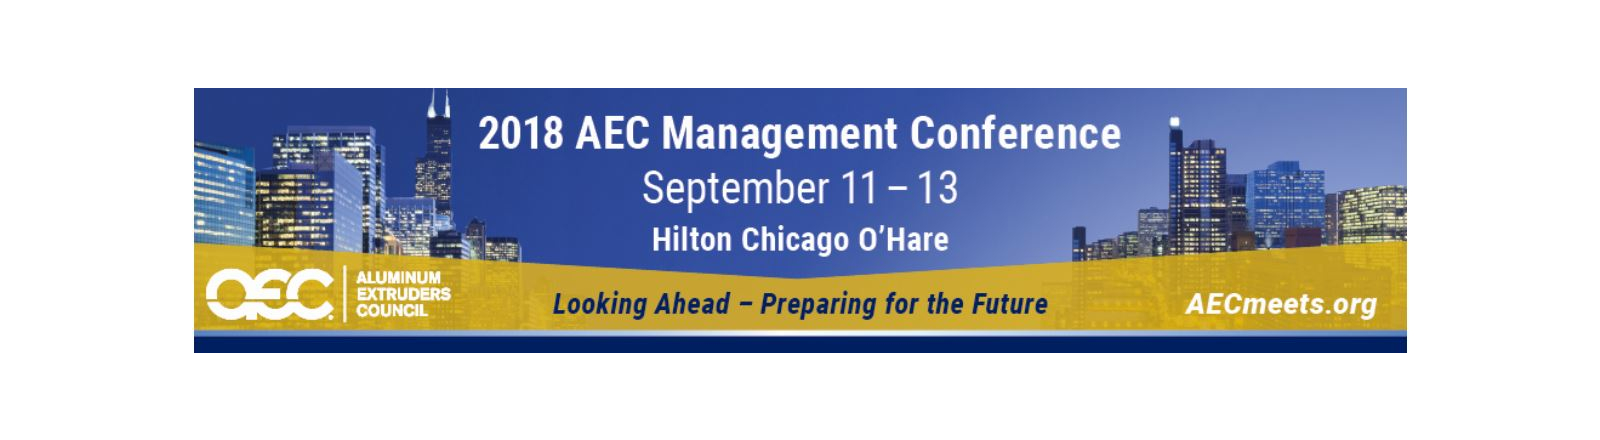 2018 AEC MANAGEMENT CONFERENCE